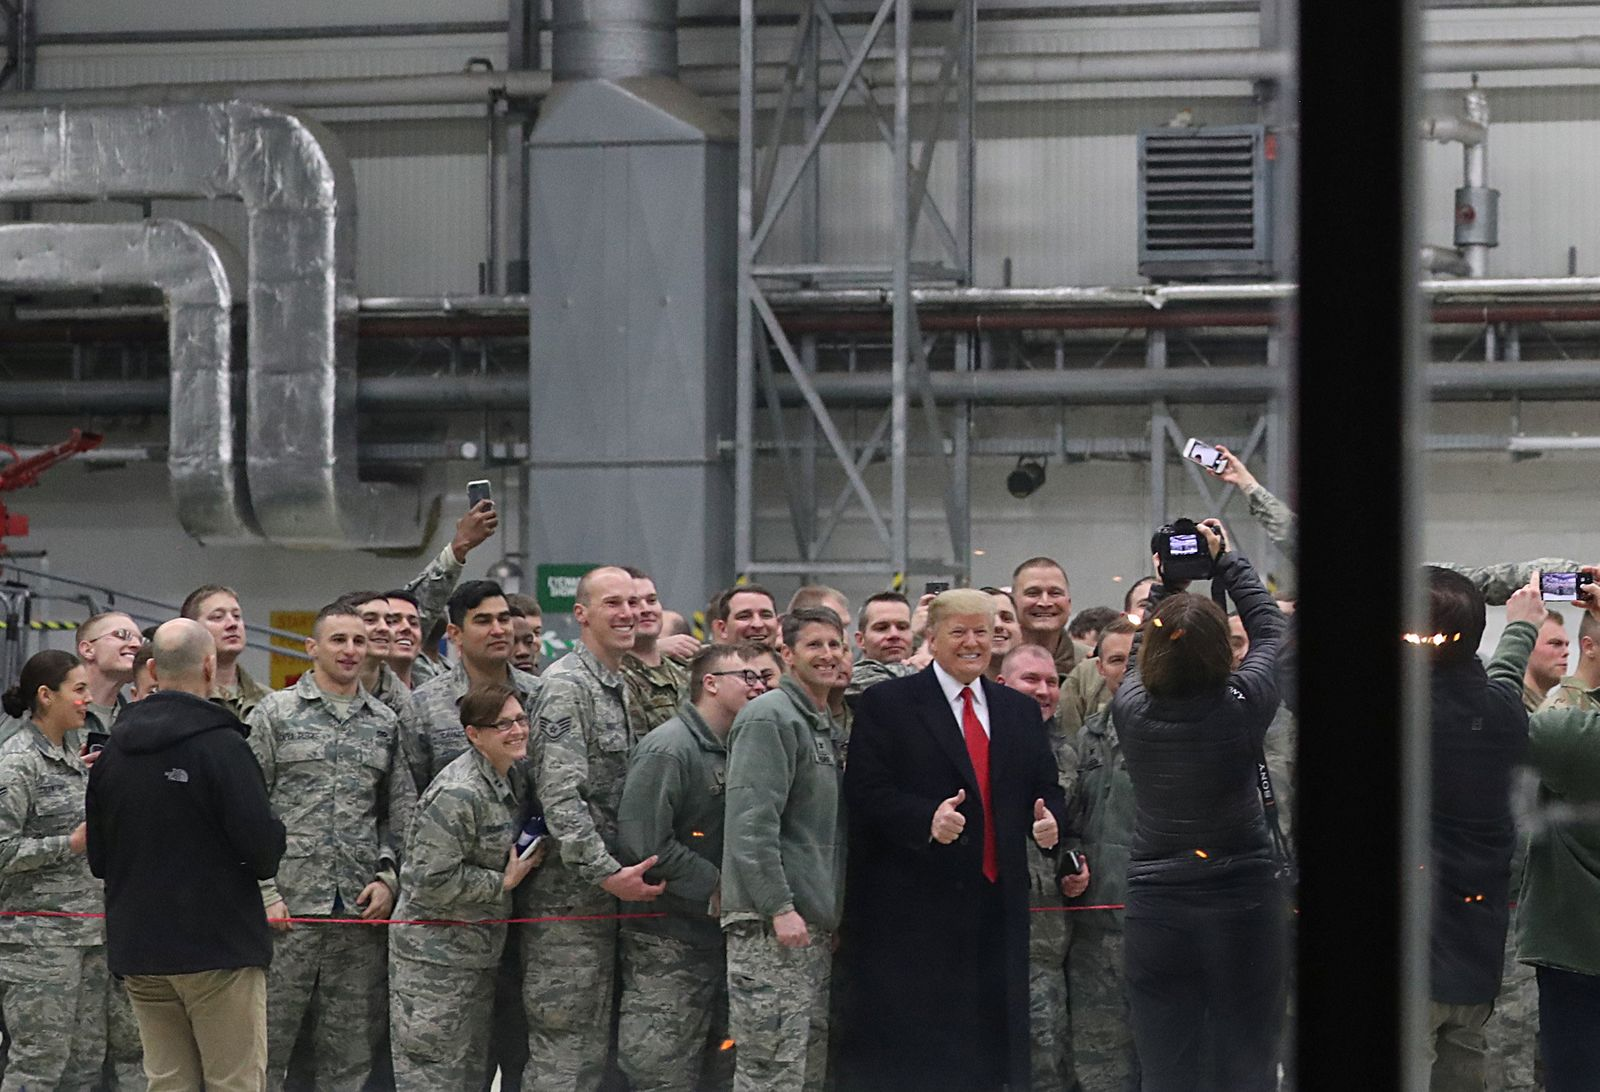 U.S. President Donald Trump takes a photo with U.S. troops at Ramstein Air Force Base in Germany